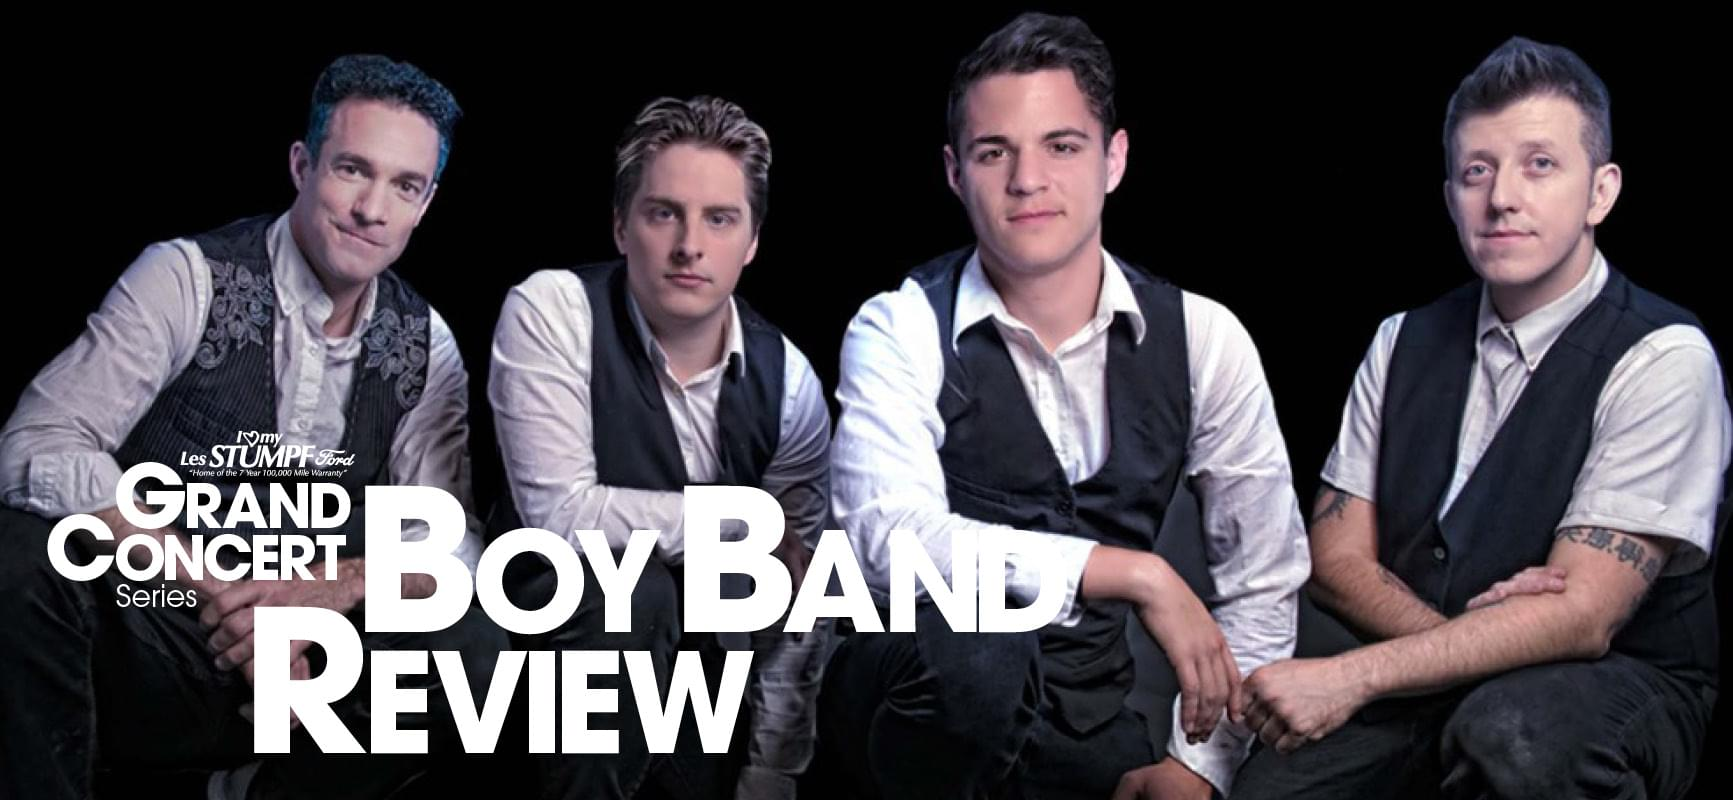 Star 98 Gets Boy Band Crazy all next week with Steve and Laura!